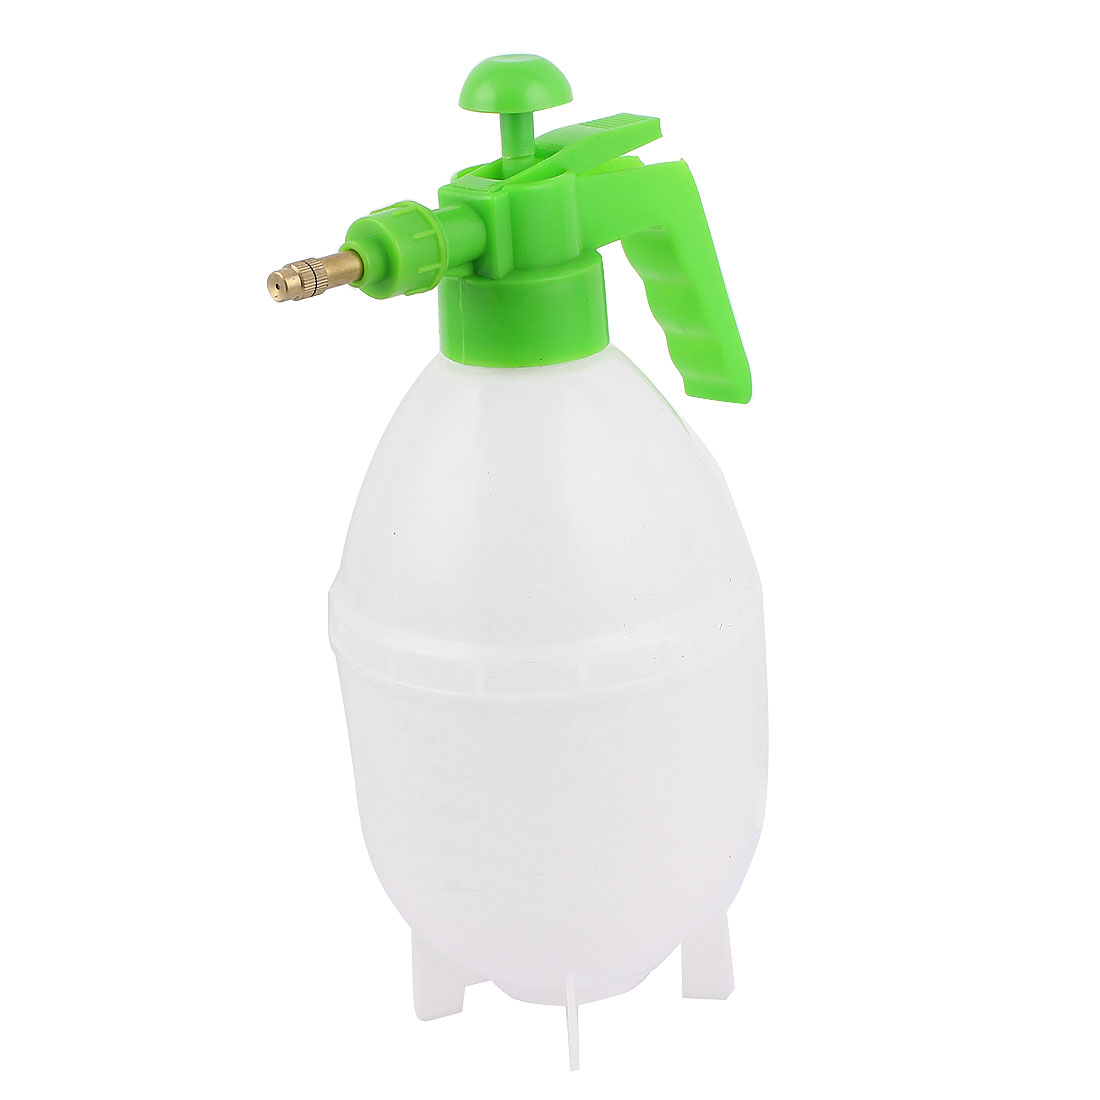 Green White Plastic Plant Watering Water Pressure Sprayer Spray Bottle Garden Tool 1500Ml